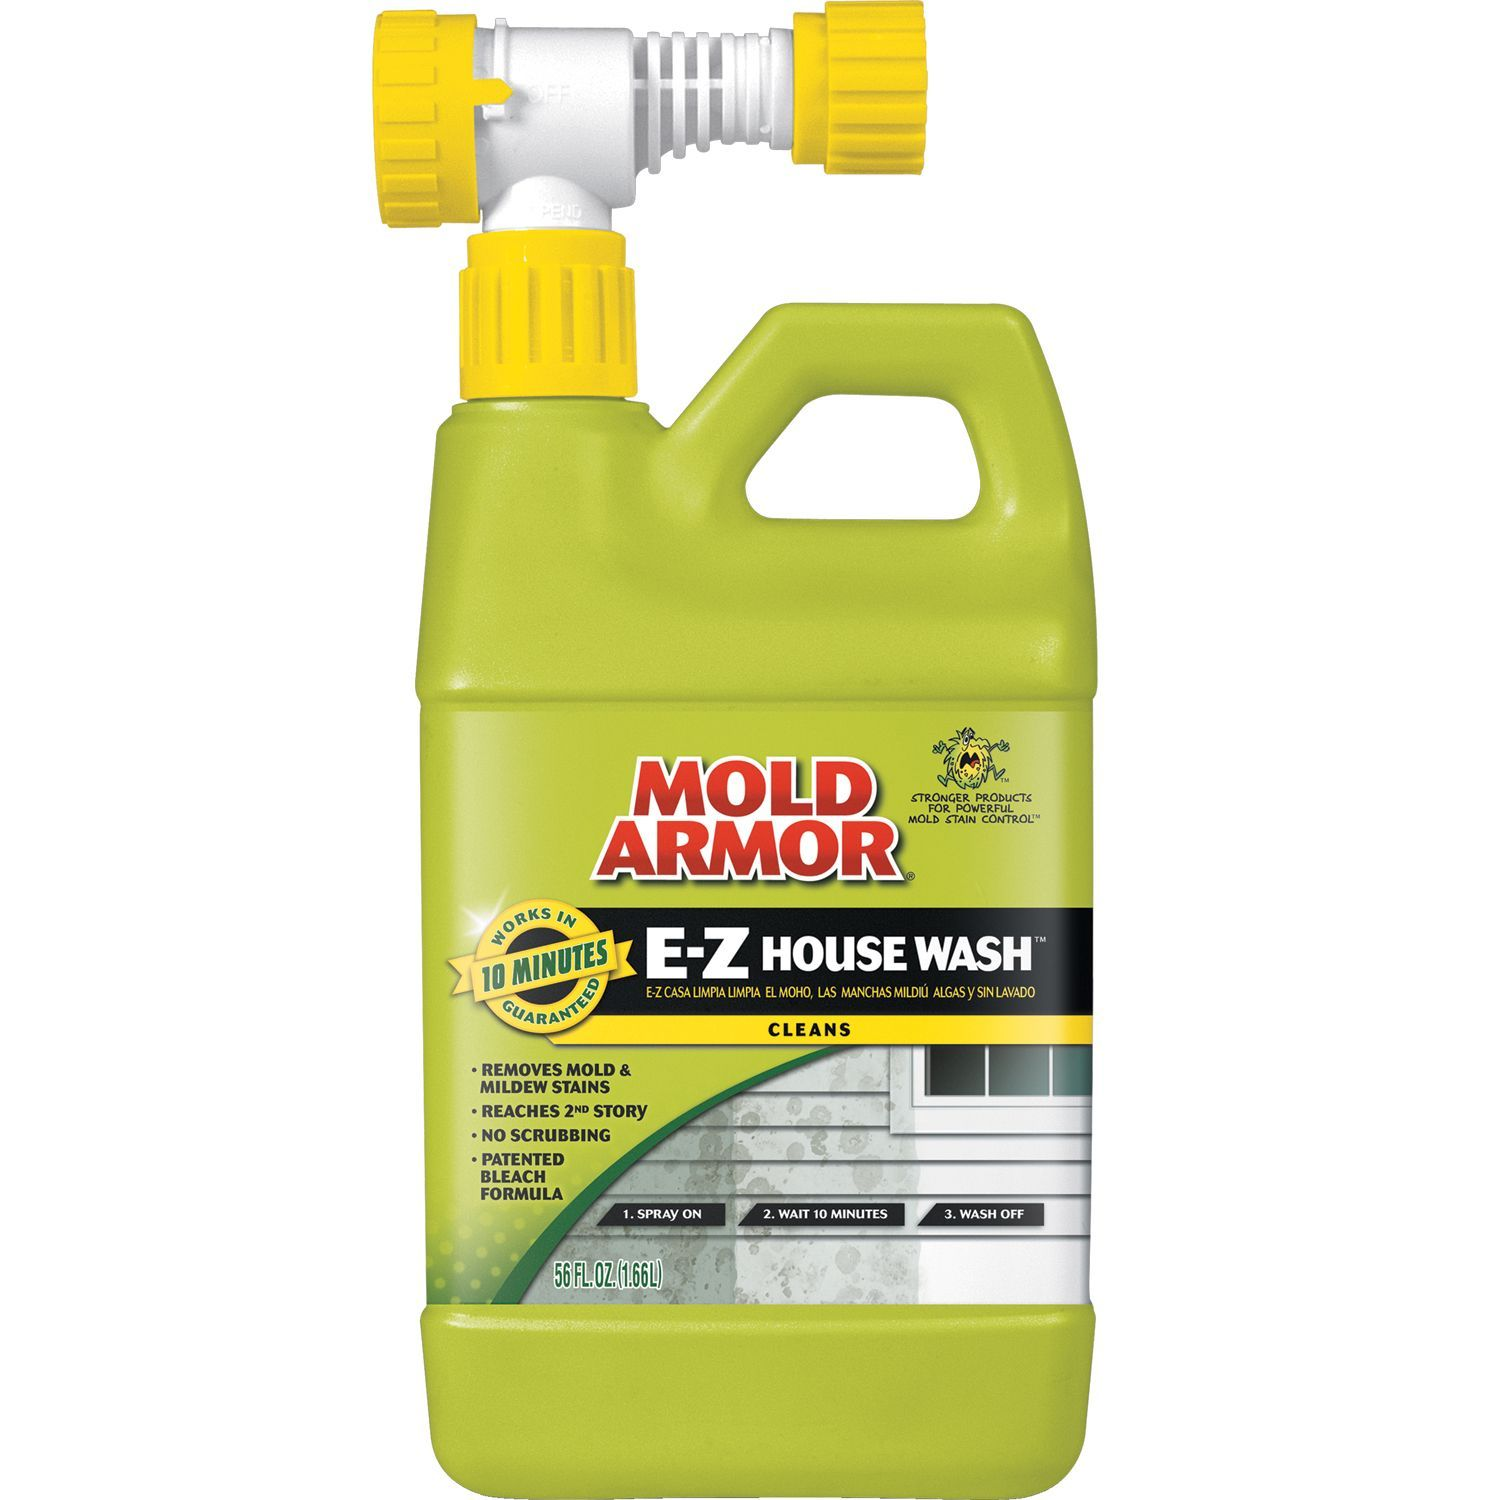 House Wash Removes Dirt And Stains Caused By Mold Mildew And Algae From Exterior Of House Ideal For Use On Wood Vinyl House Wash Mold Remover Mildew Stains